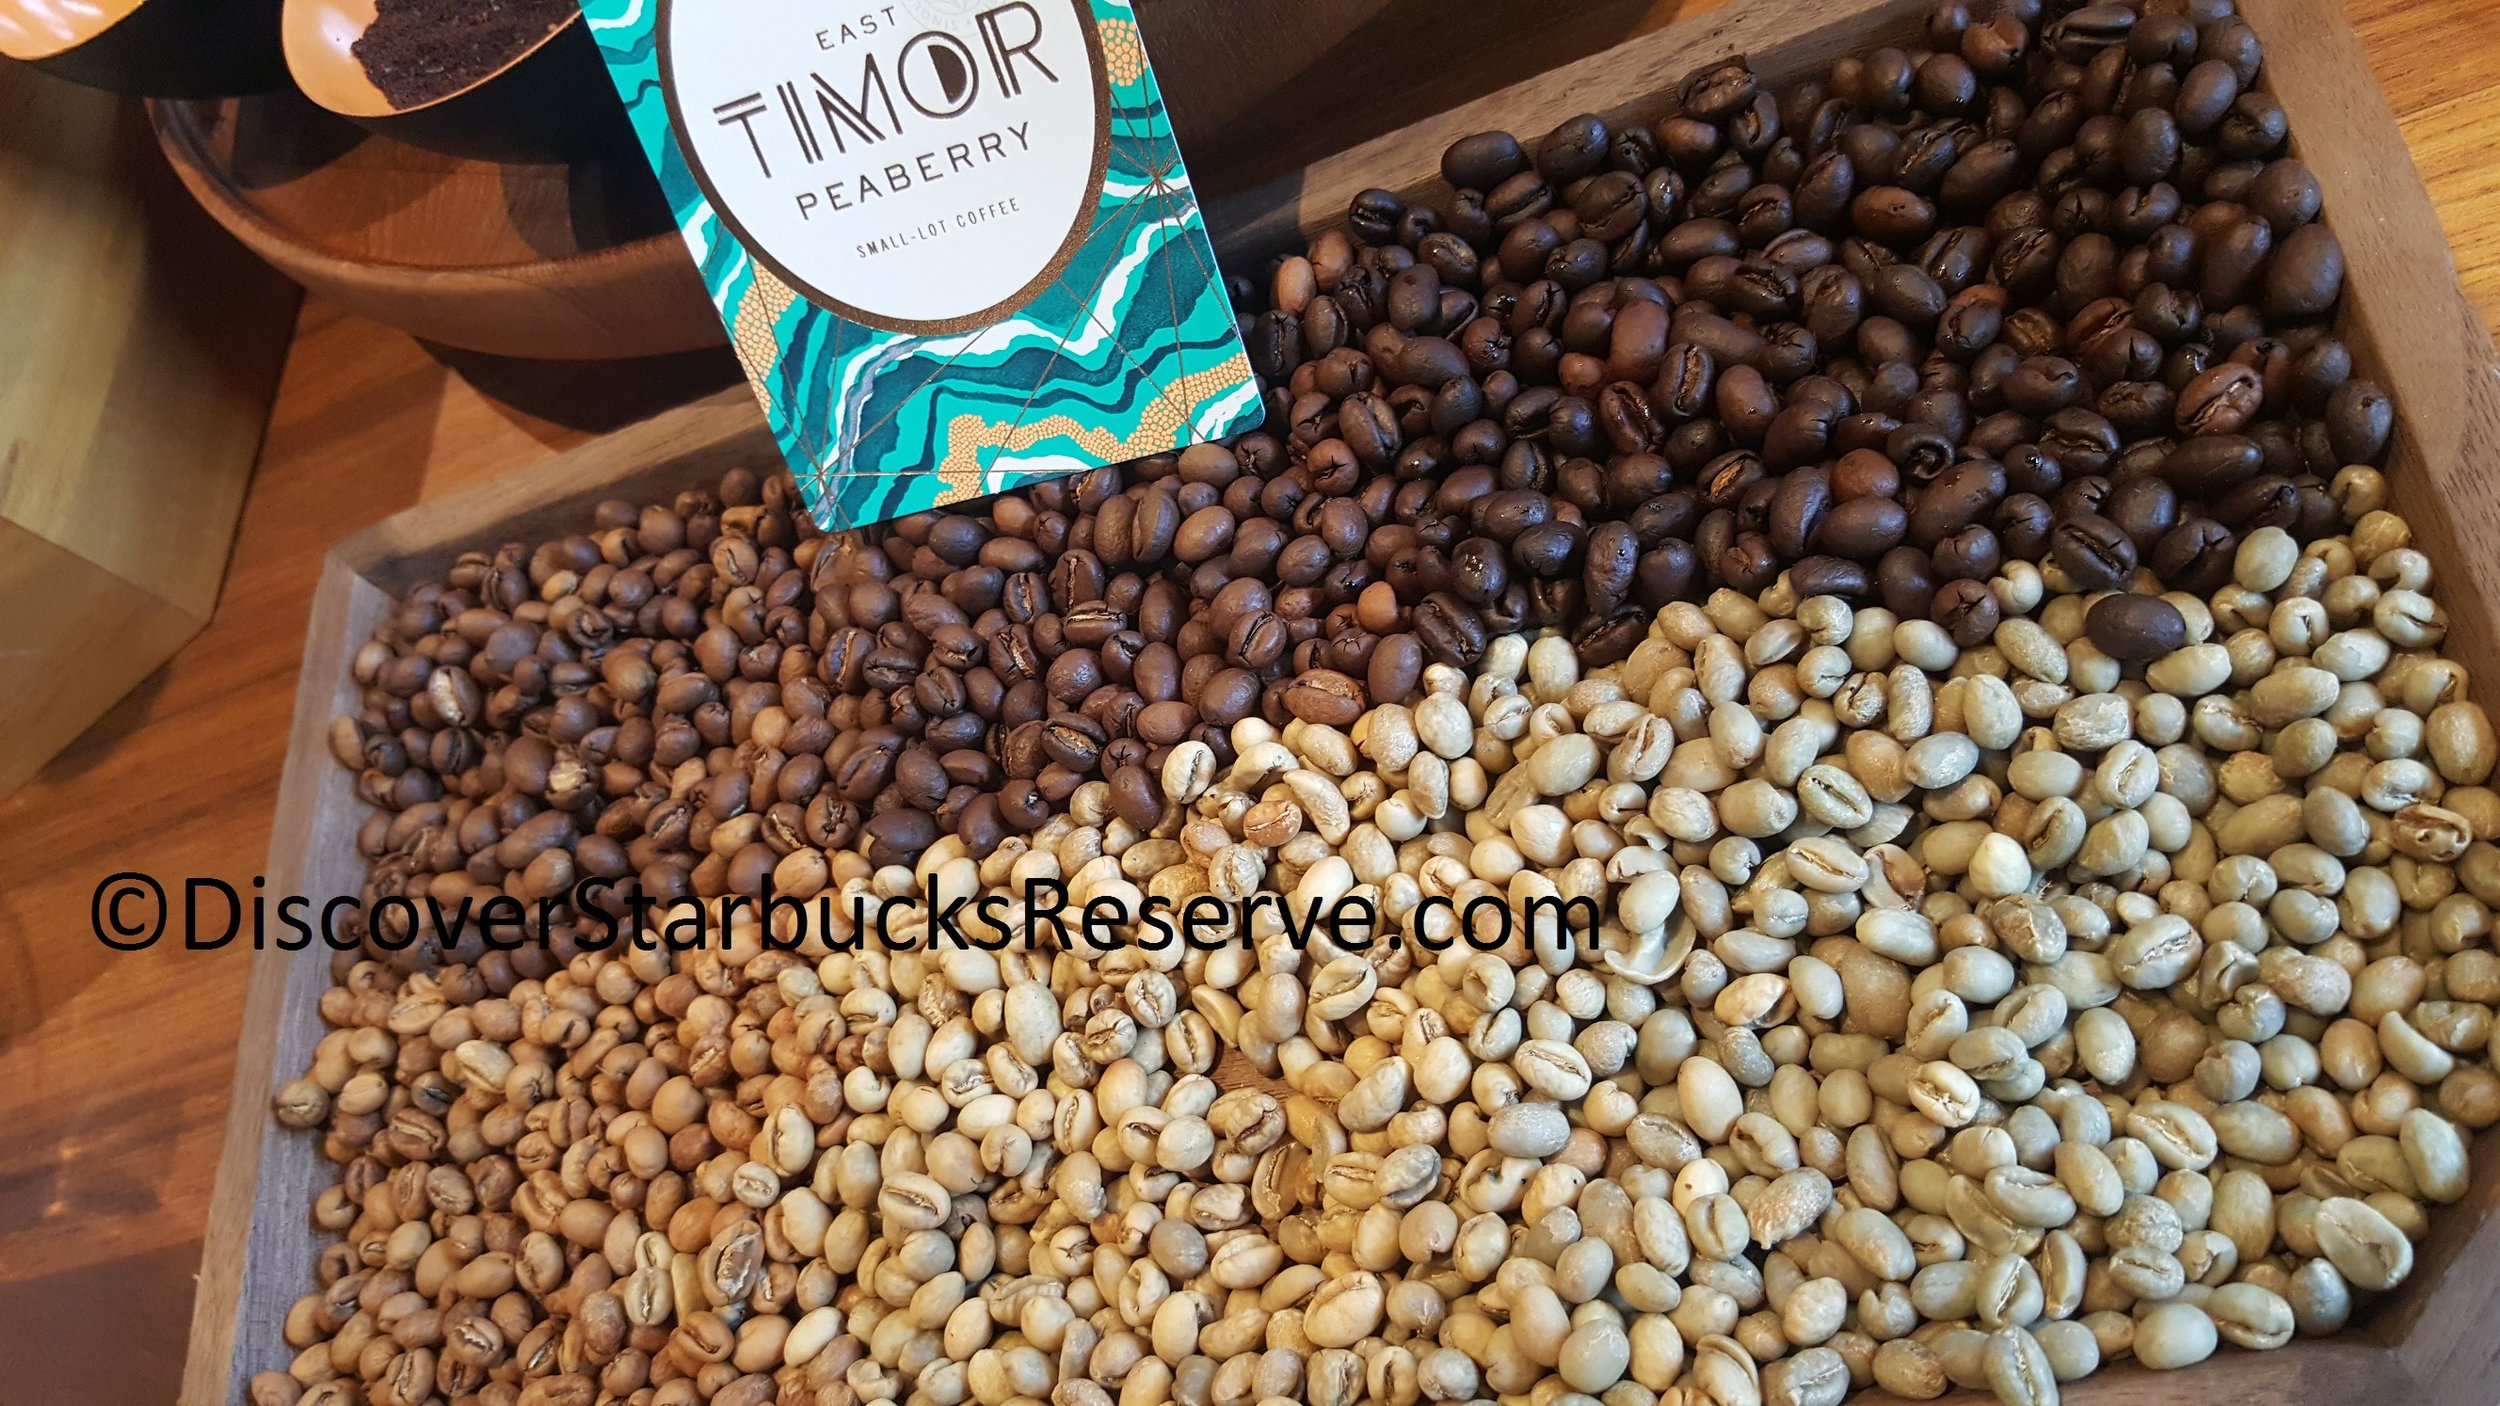 2 - 1 - 20160415_084013[1] green to fully roasted east timor peaberry.jpg